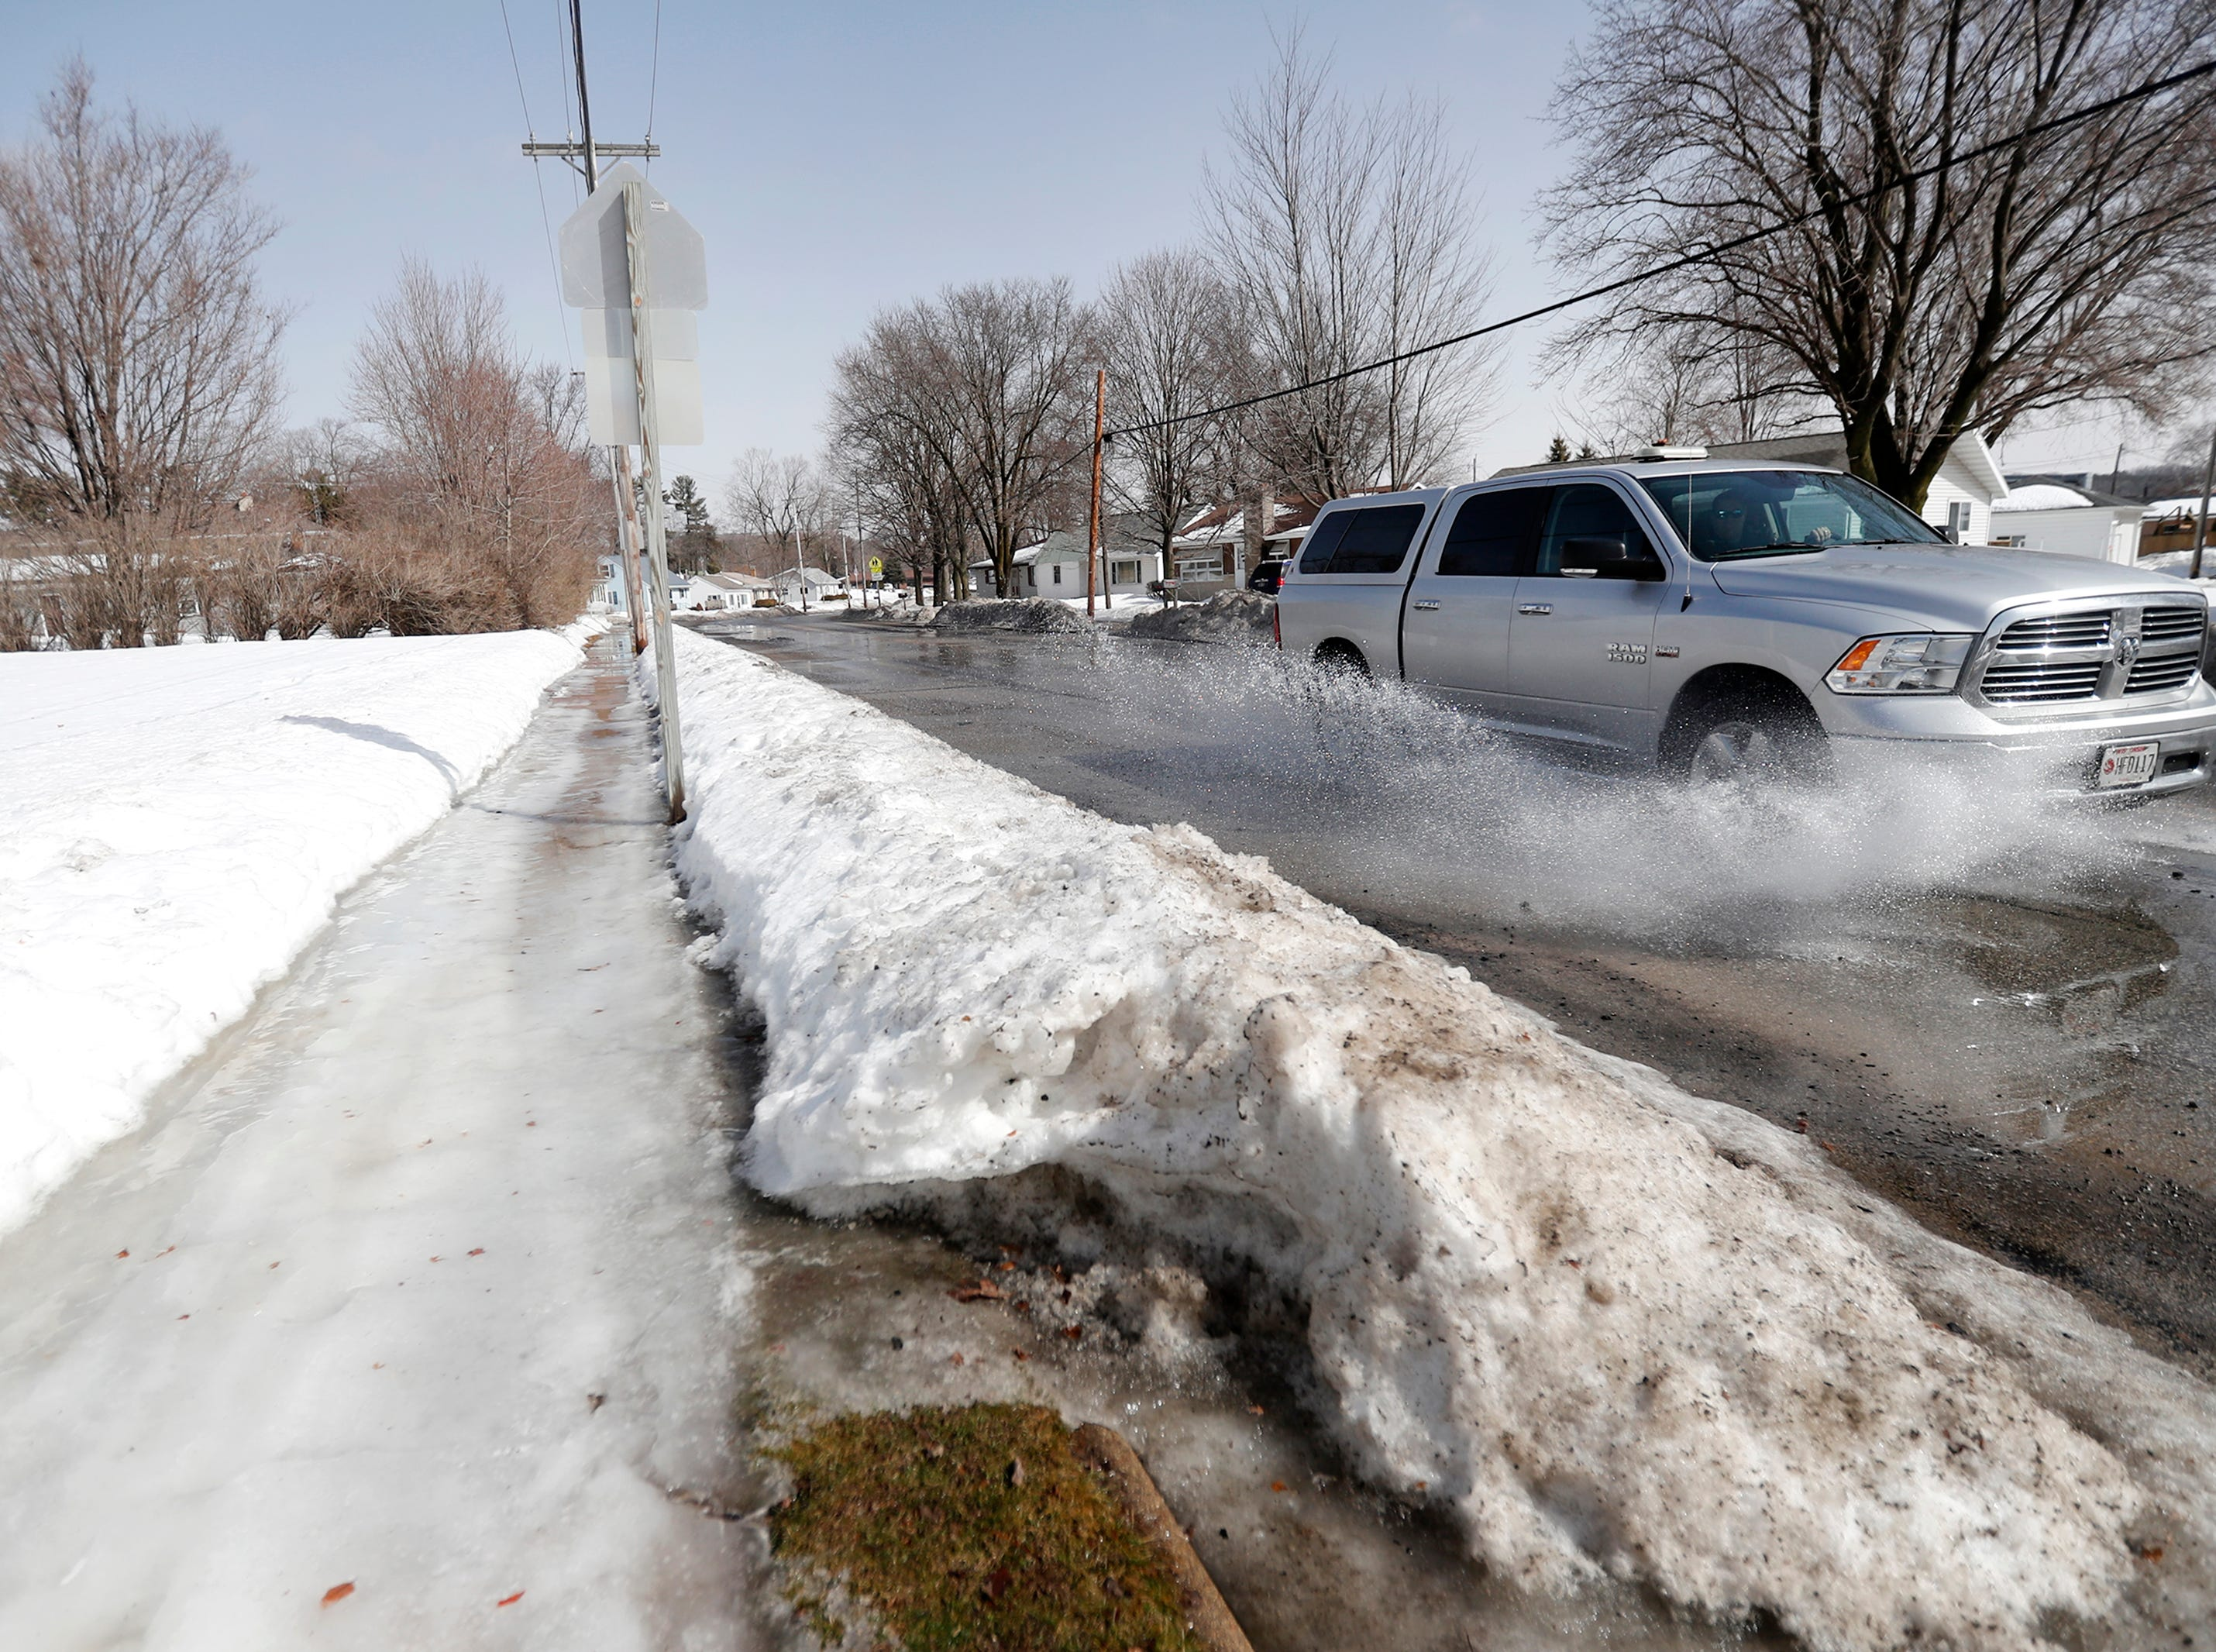 A motorist drives through water and pot holes along North Nash Street Thursday, March 14, 2019, in Hortonville, Wis. Danny Damiani/USA TODAY NETWORK-Wisconsin